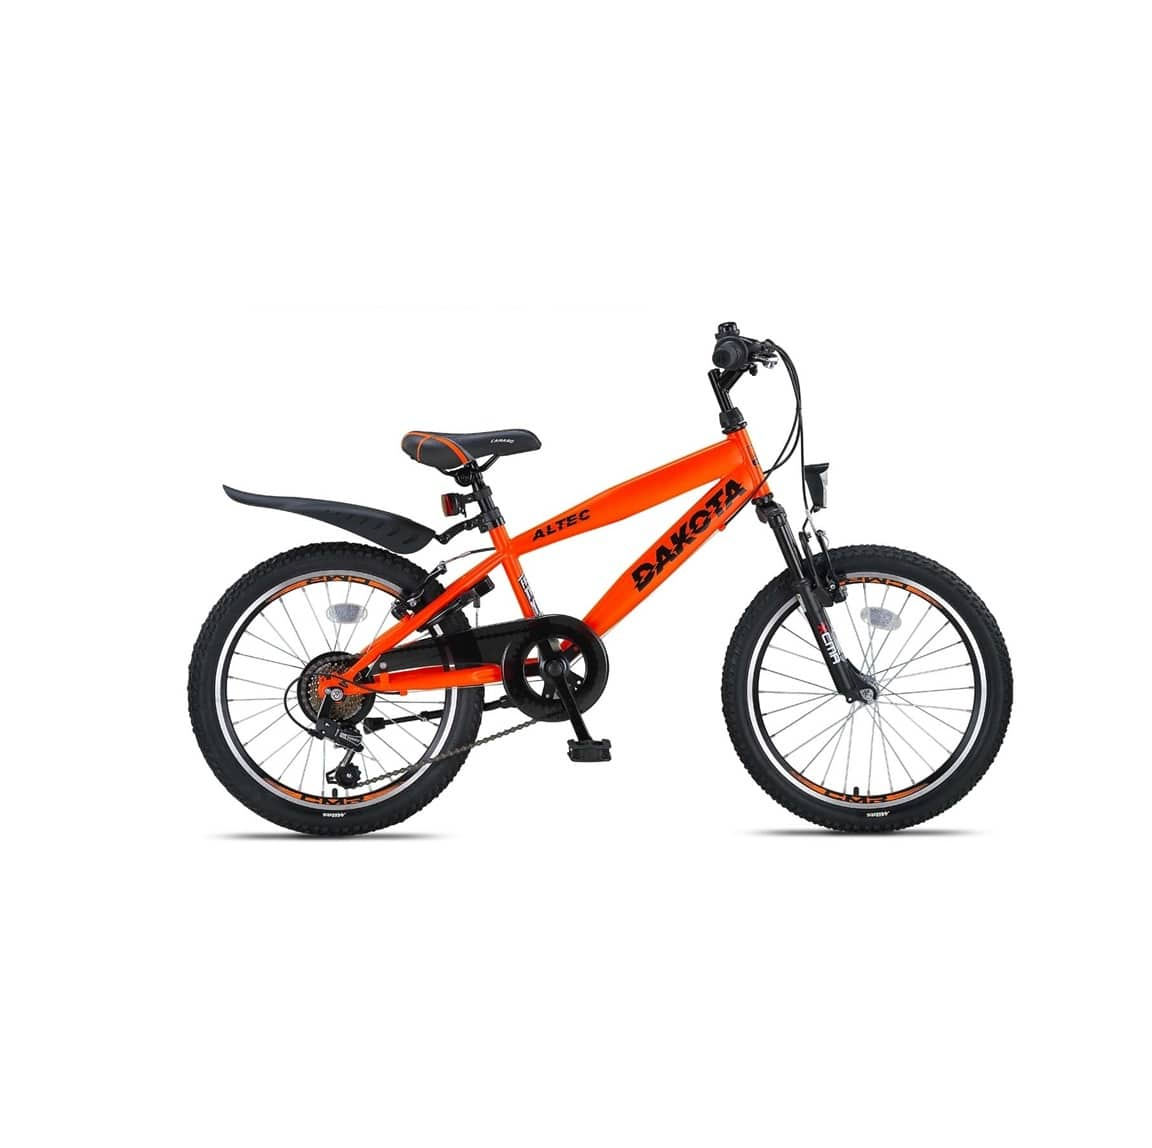 Altec-Dakota-20inch-Jongensfiets-7speed-2019-Neon-Orange-Nieuw-min